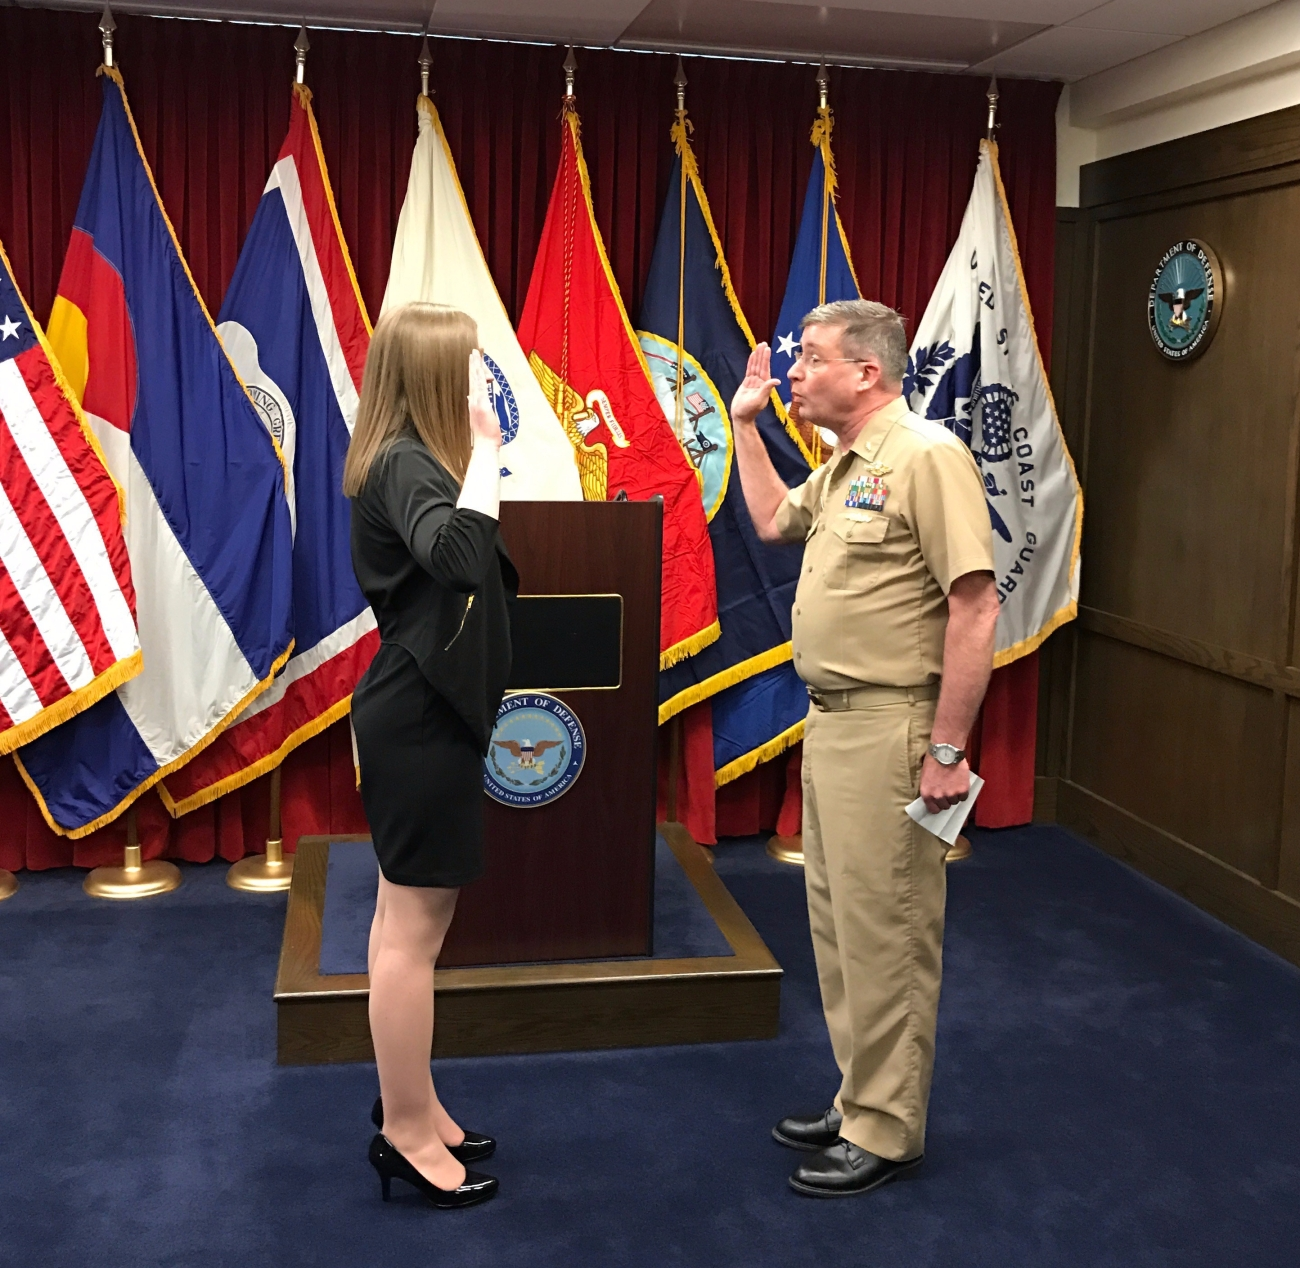 Swearing in and taking the oath of office and officially becoming Ensign Courtney Park